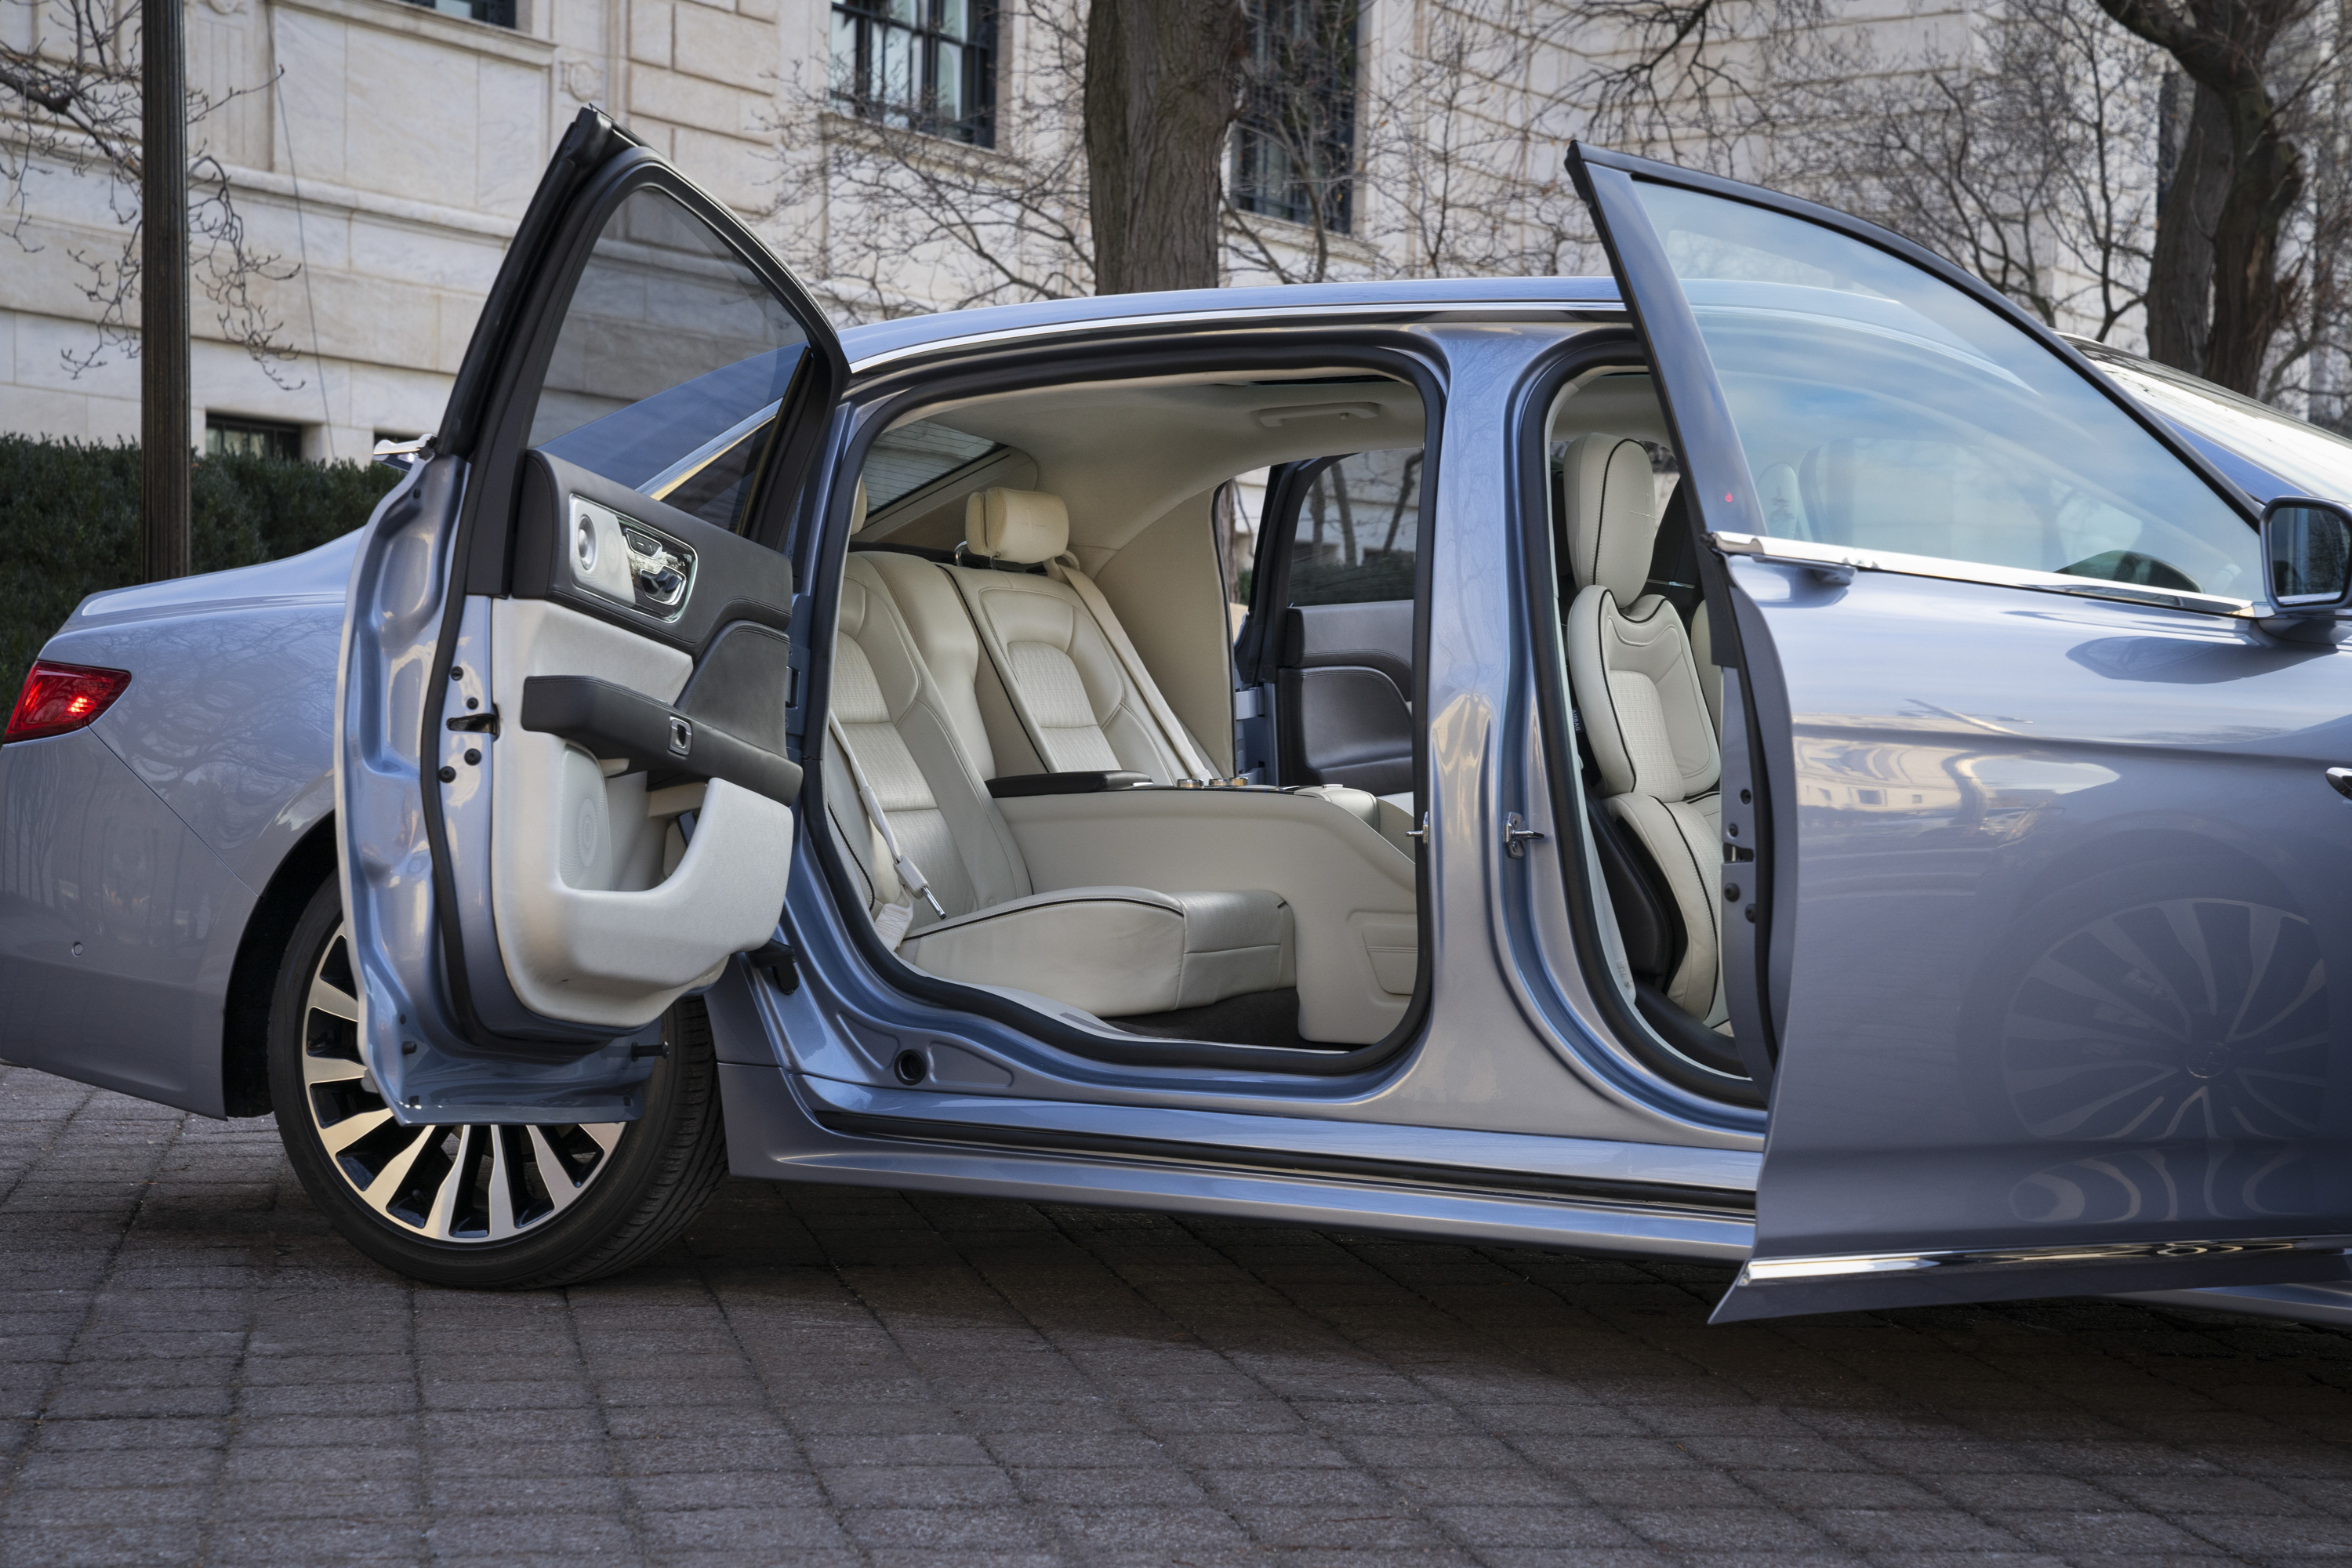 2020 Lincoln Town Car Images